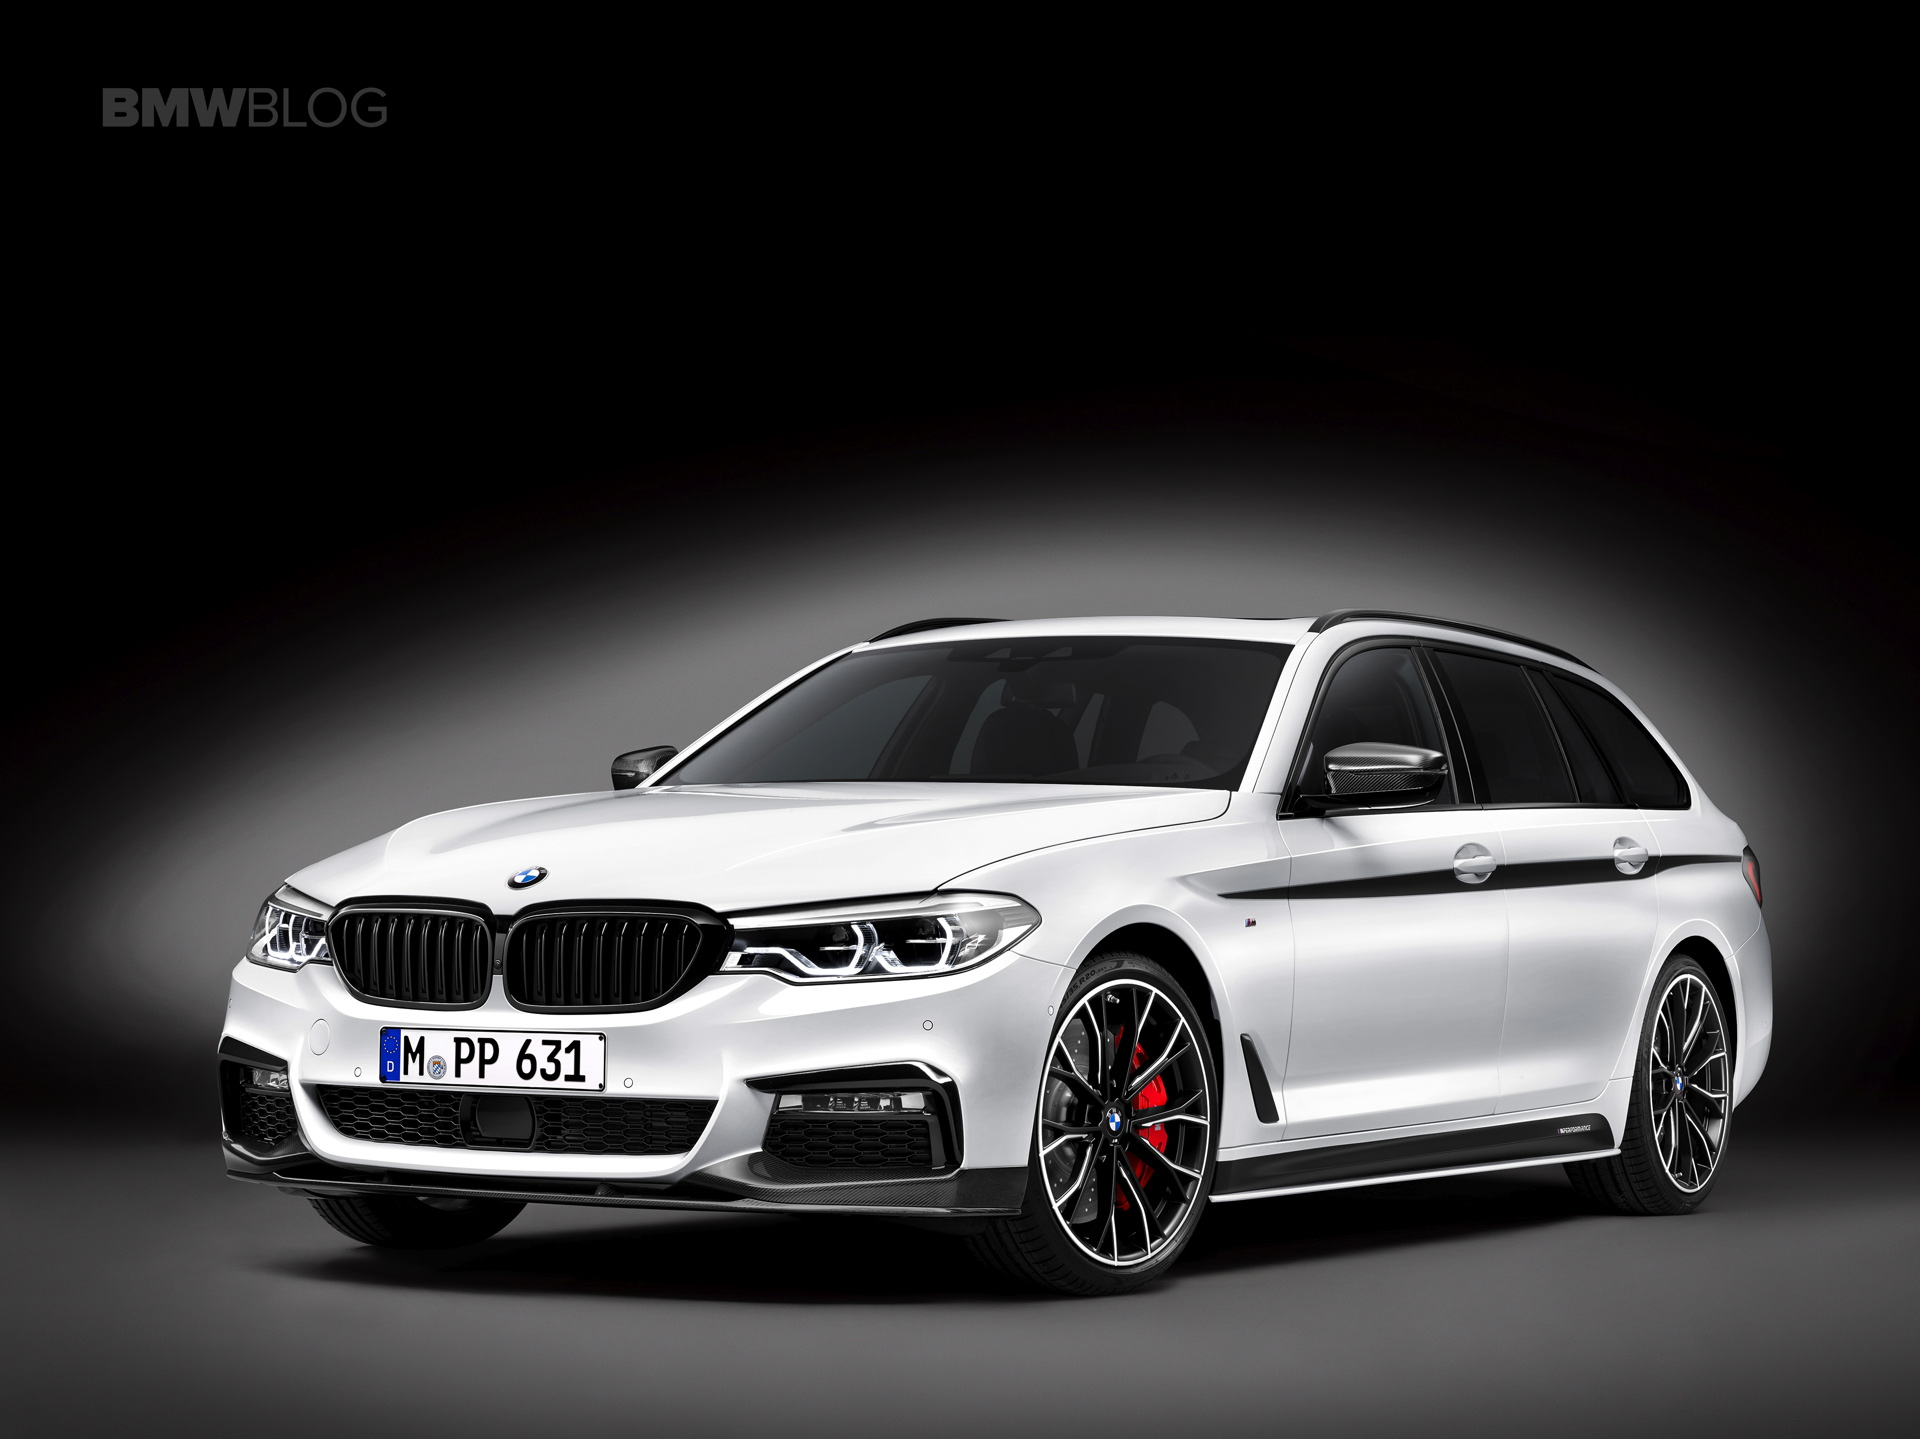 BMW M Performance Parts for the new BMW 5 Series Touring 01